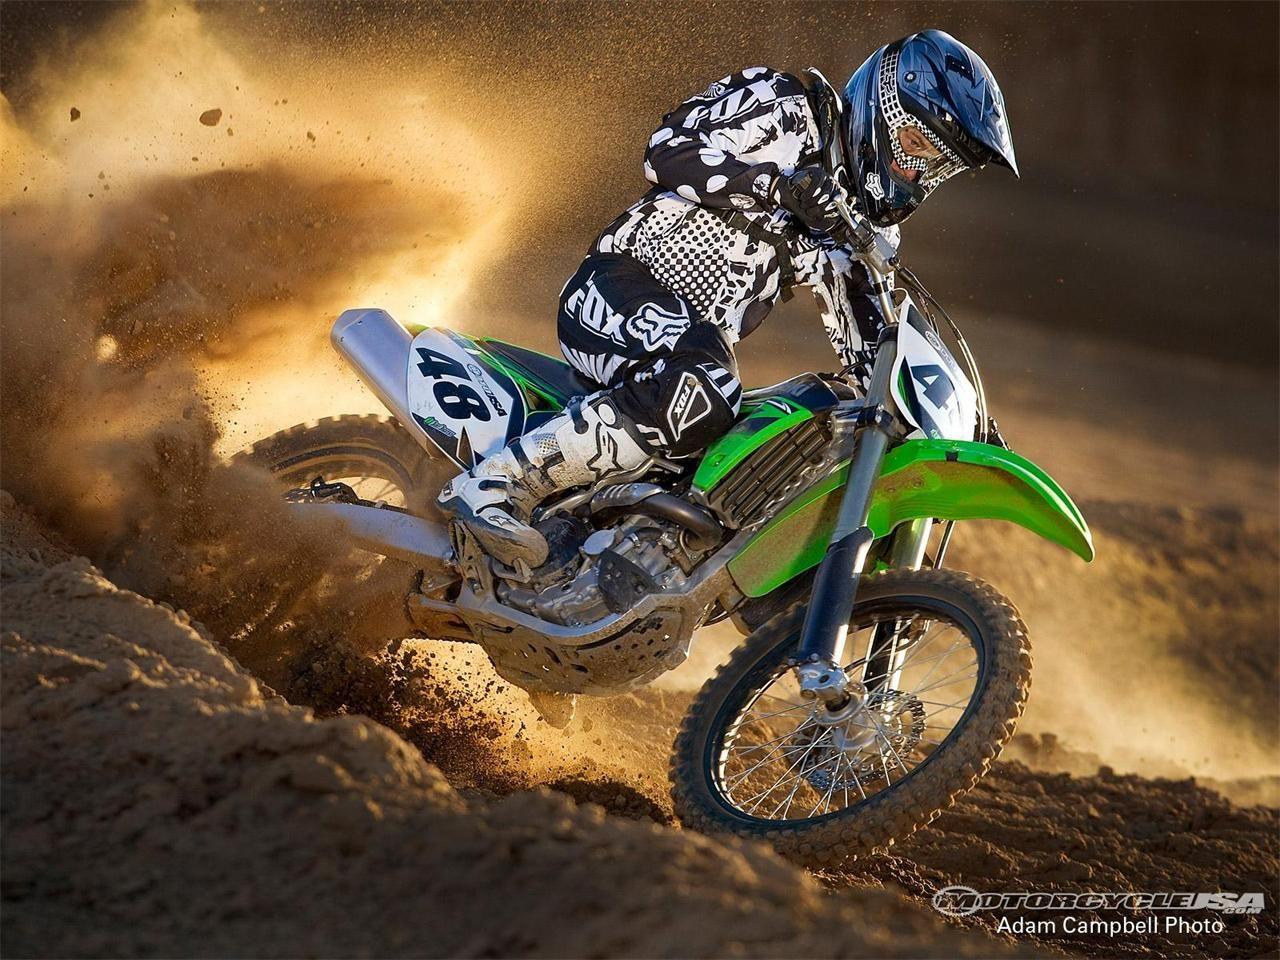 Kawasaki Dirt Bike Wallpapers 5 Of 8 1280x960